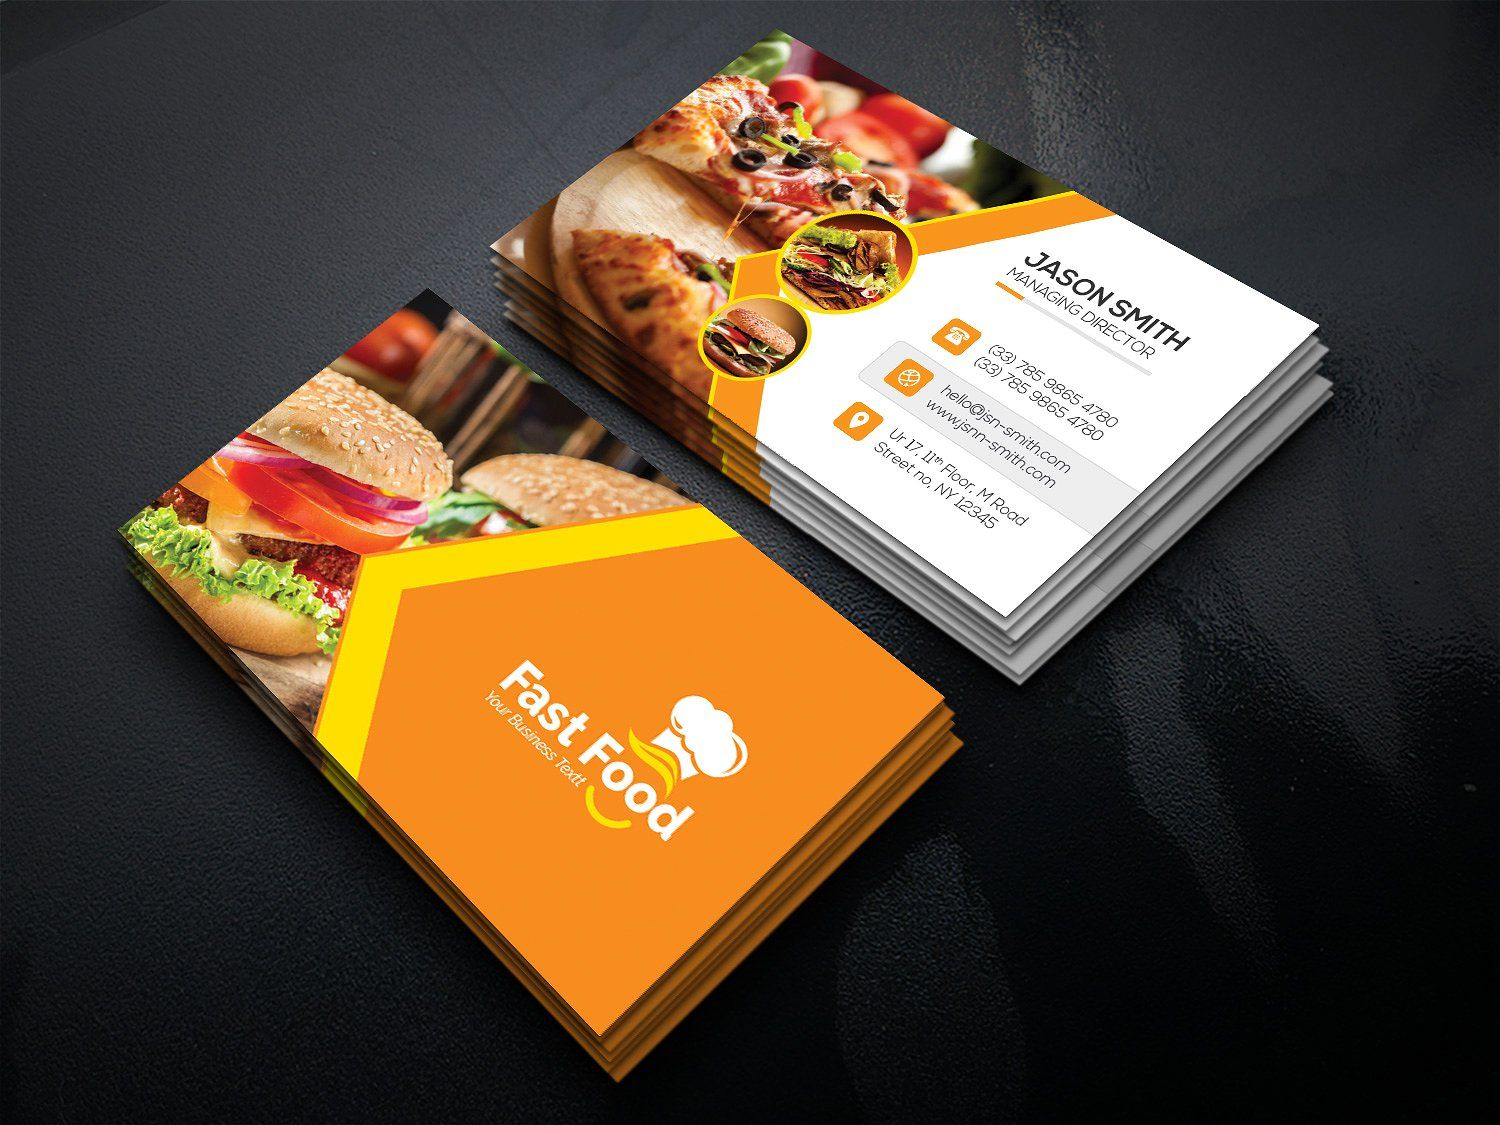 Fast Food Business Card Food Business Card Restaurant Business Cards Free Business Card Templates